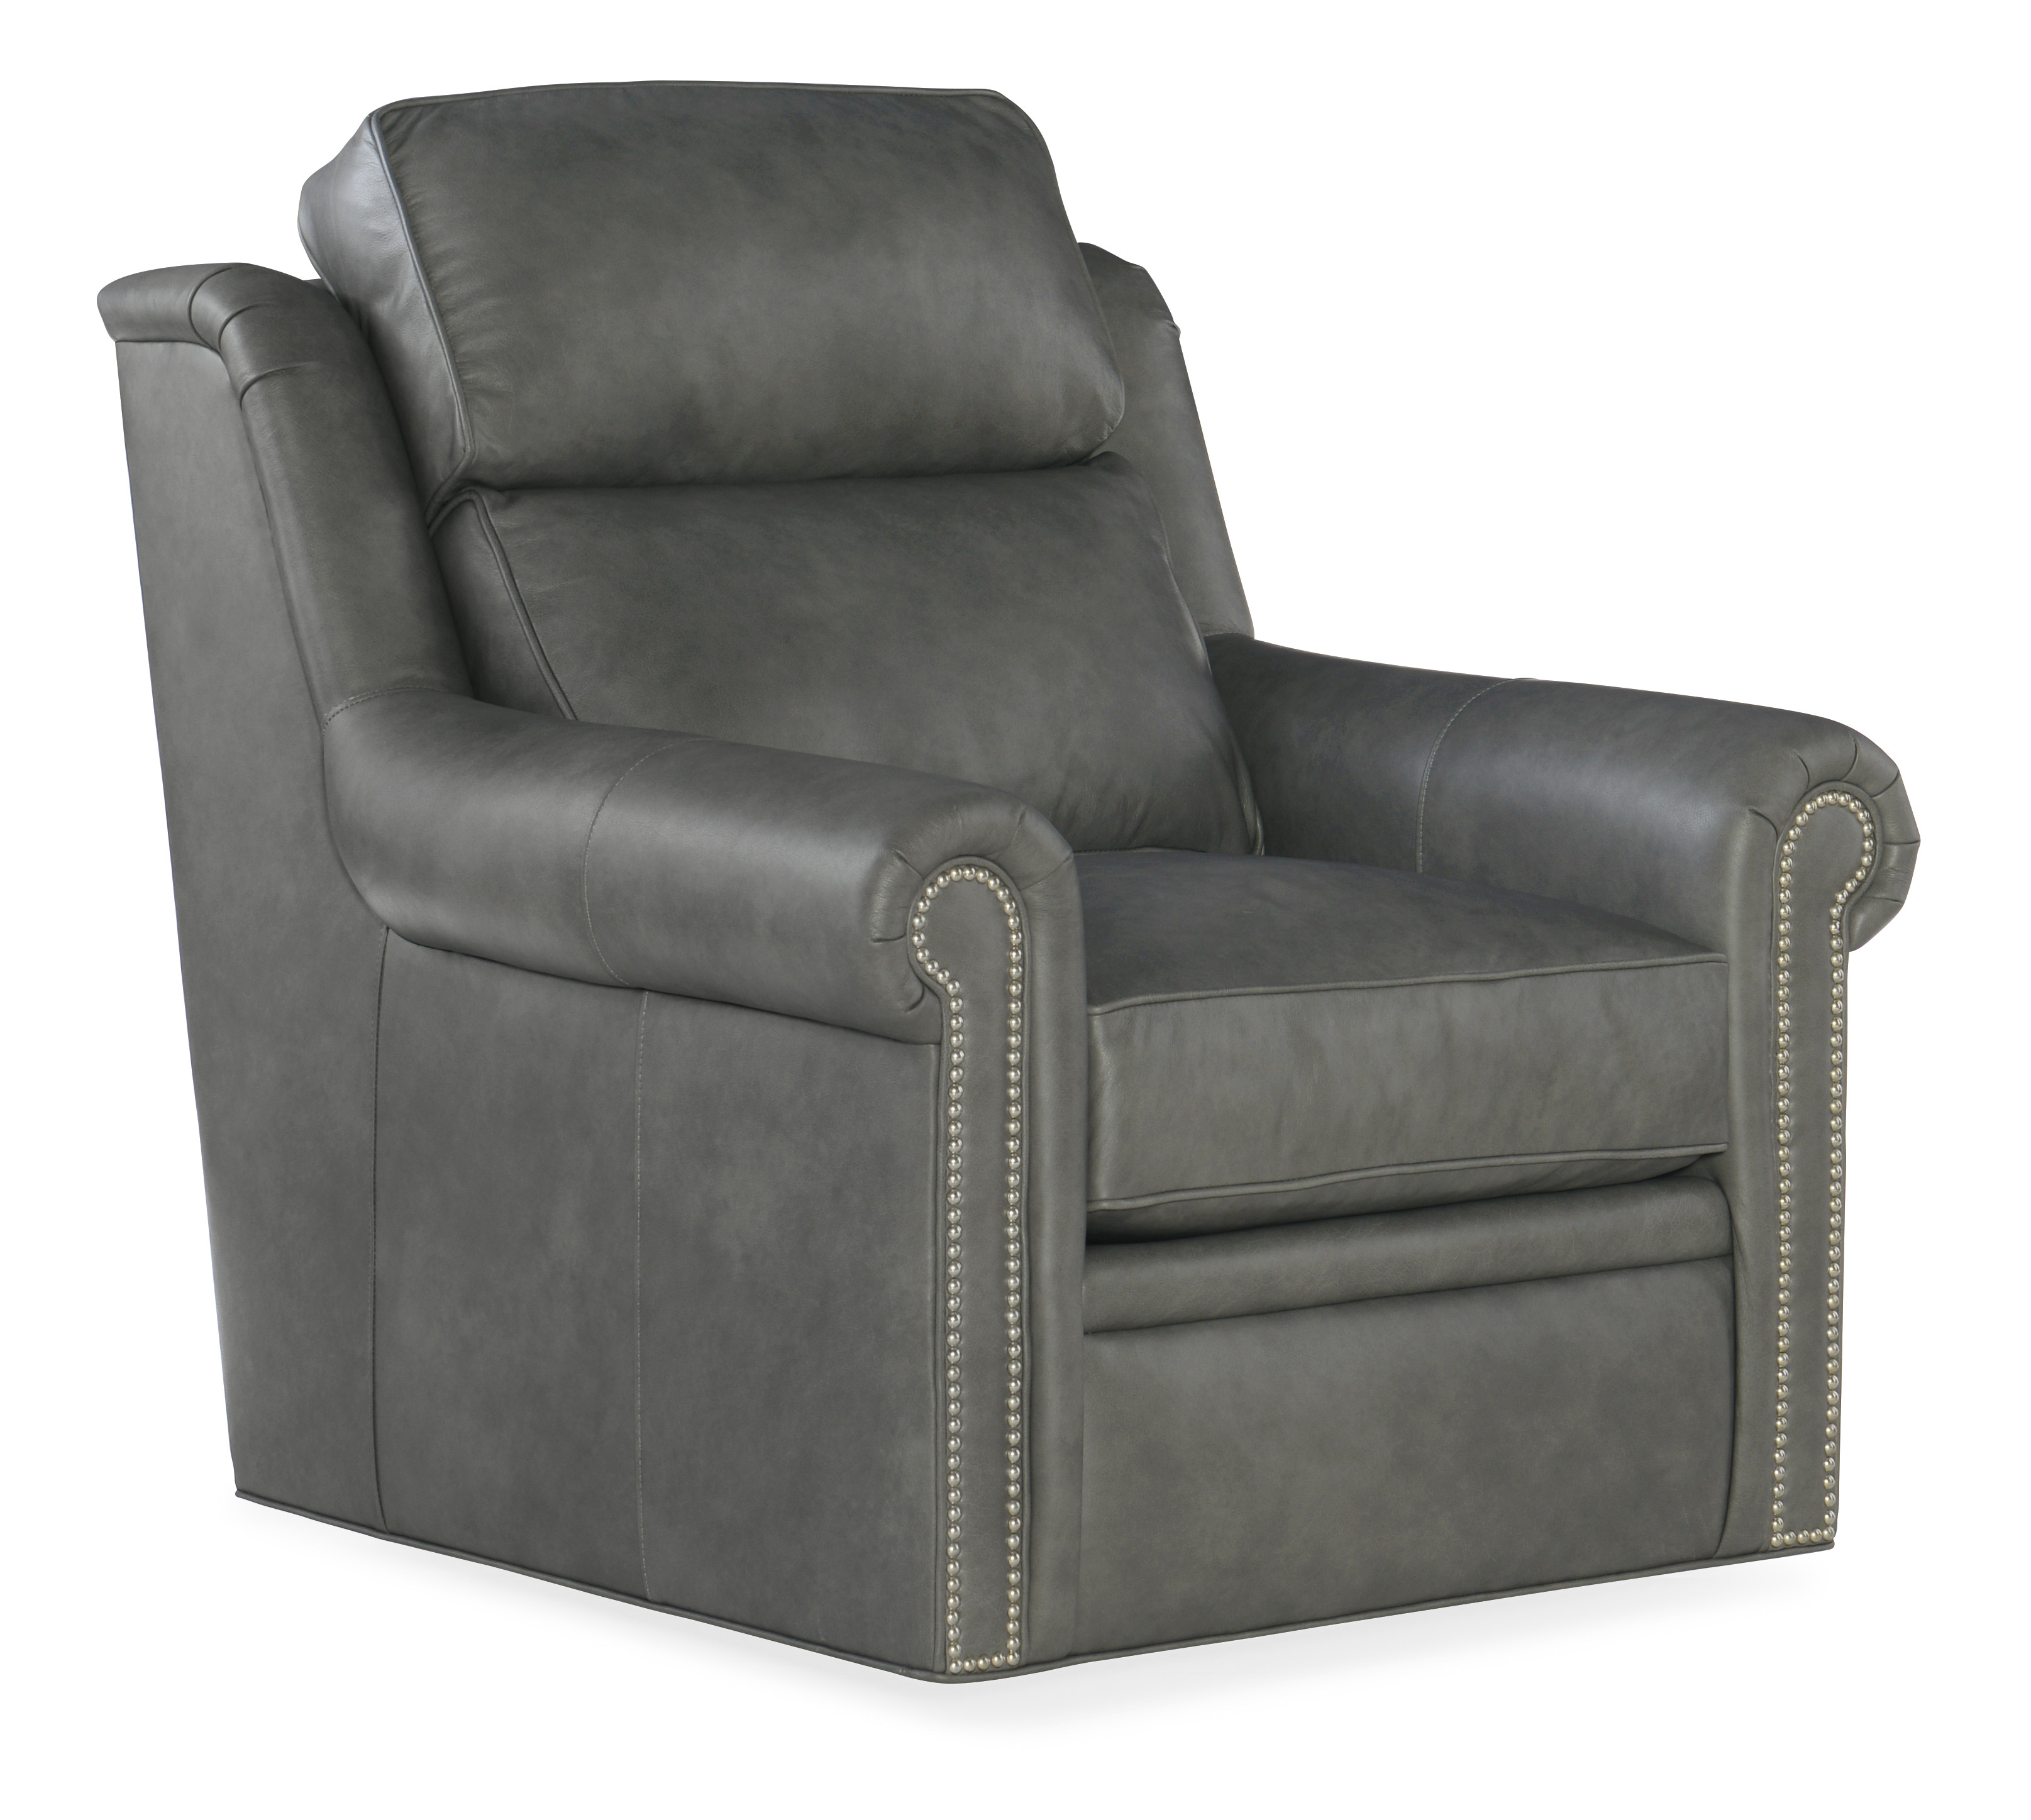 Reece Swivel Chair by Bradington Young at Sprintz Furniture